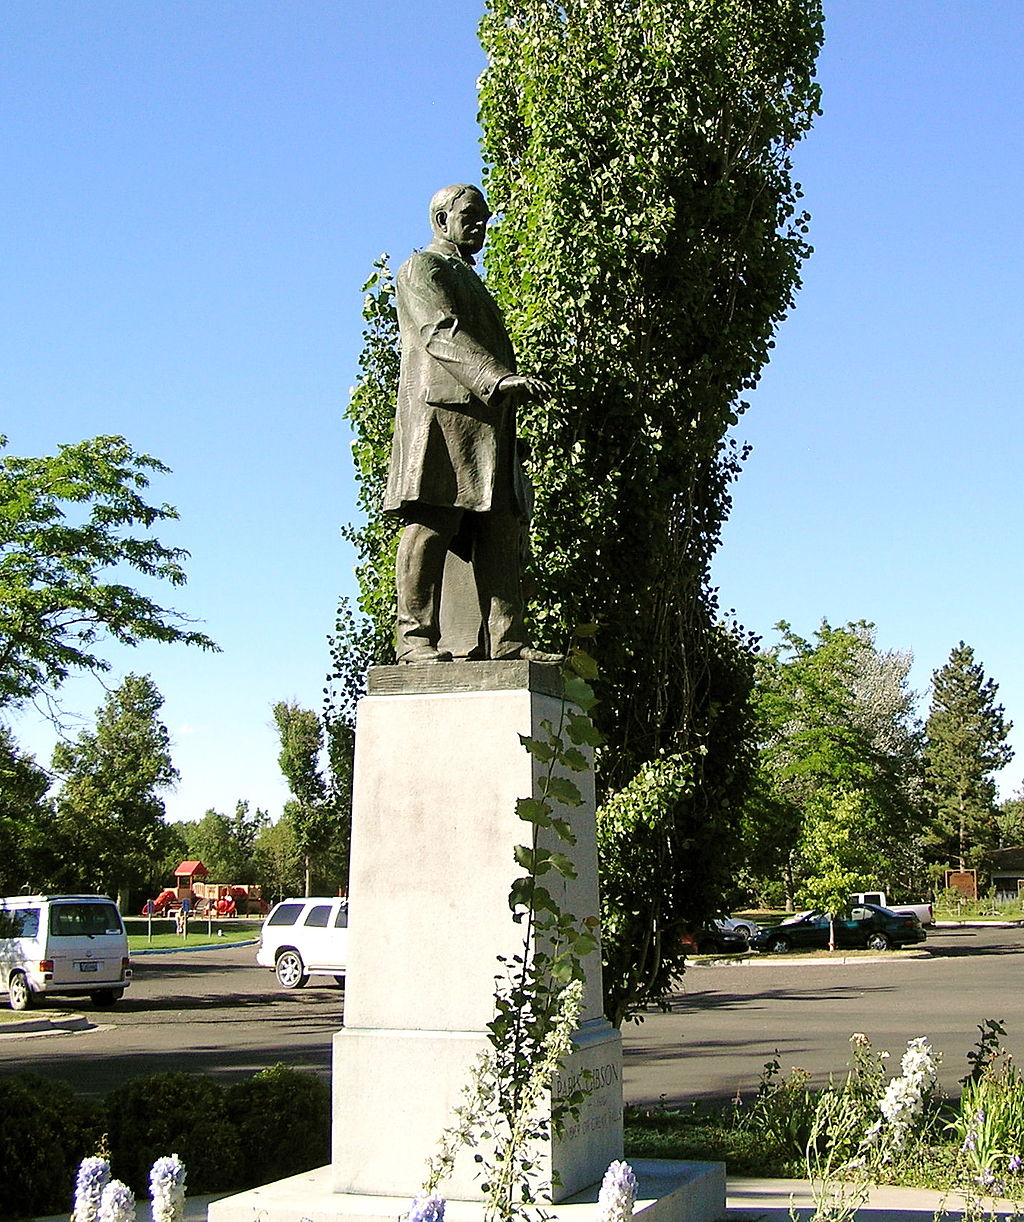 Paris Gibson (1830-1920) founded Great Falls in 1882. He served as mayor and later became a U.S. Senator.